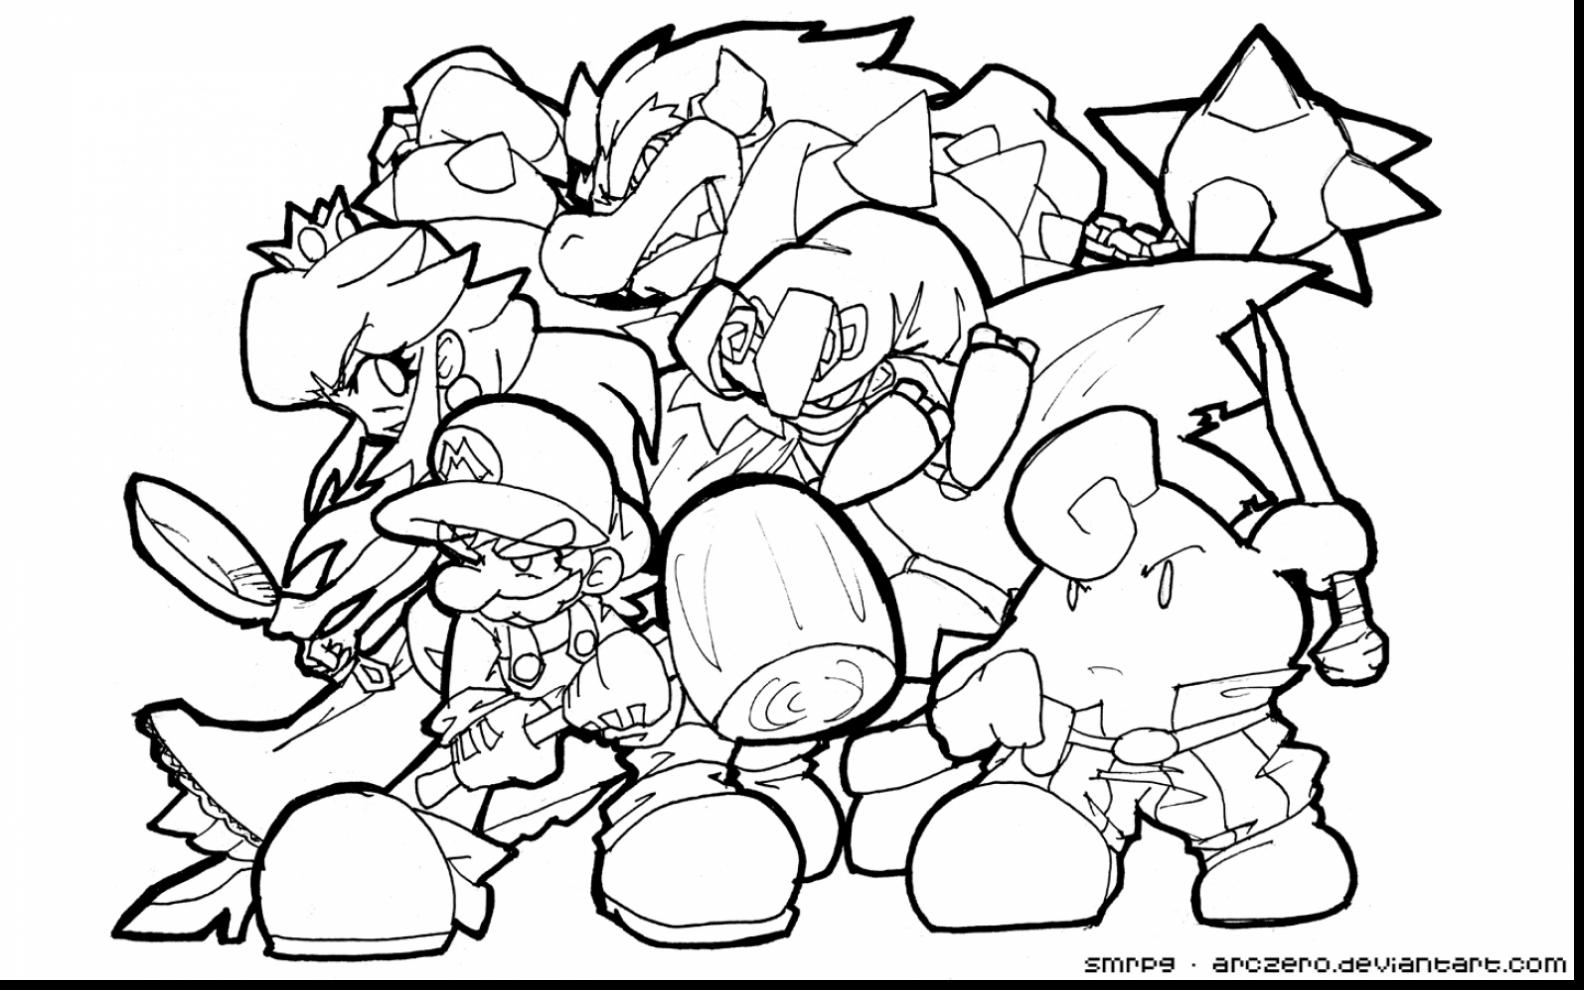 Super Mario Characters Coloring Pages at GetDrawings.com | Free for ...